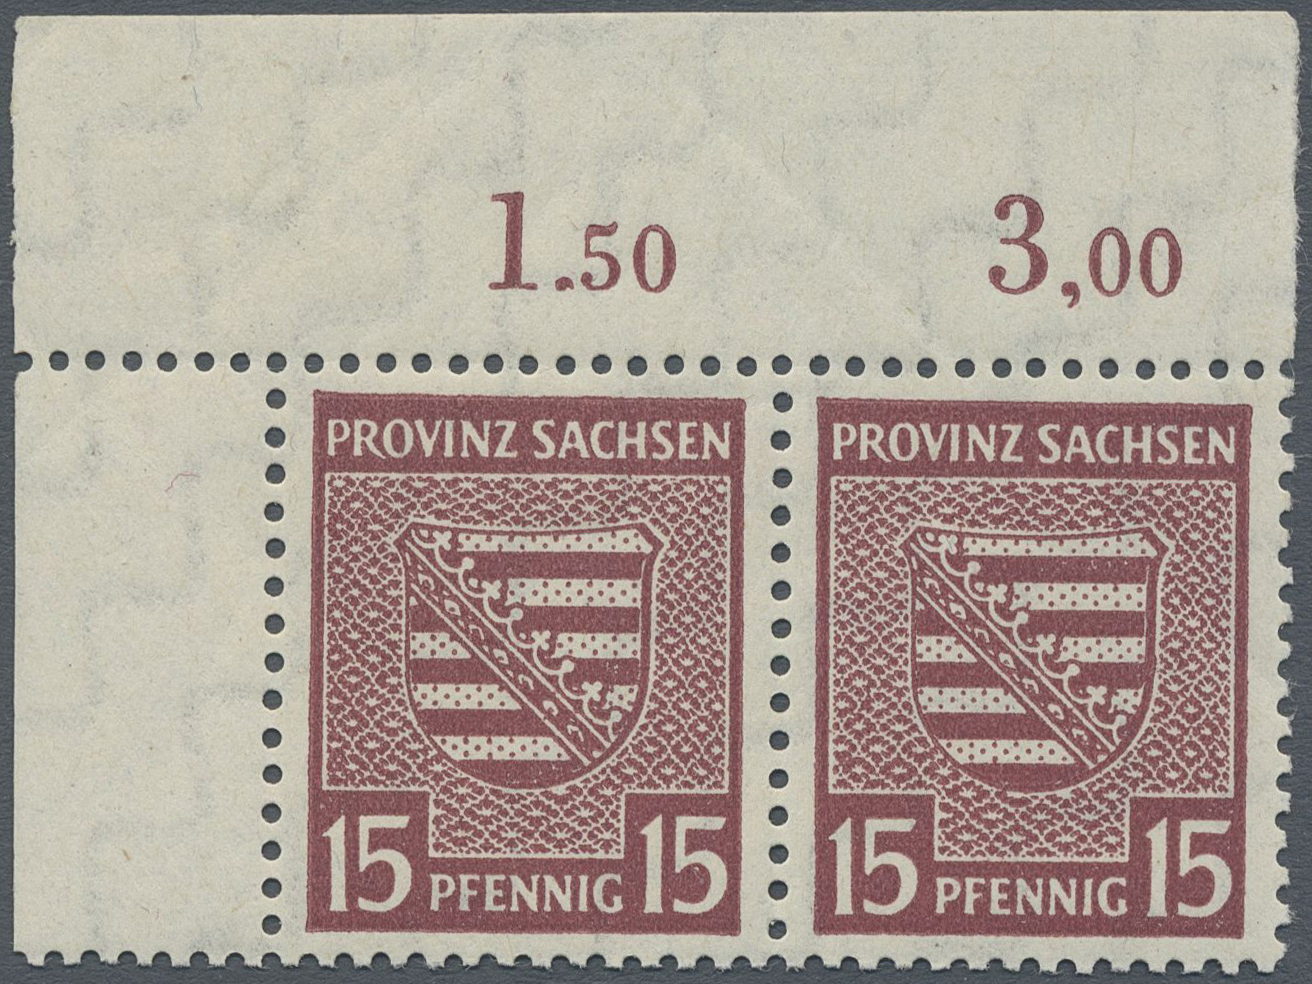 Lot 24140 - Sowjetische Zone - Provinz Sachsen  -  Auktionshaus Christoph Gärtner GmbH & Co. KG Single lots Germany + Picture Postcards. Auction #39 Day 5